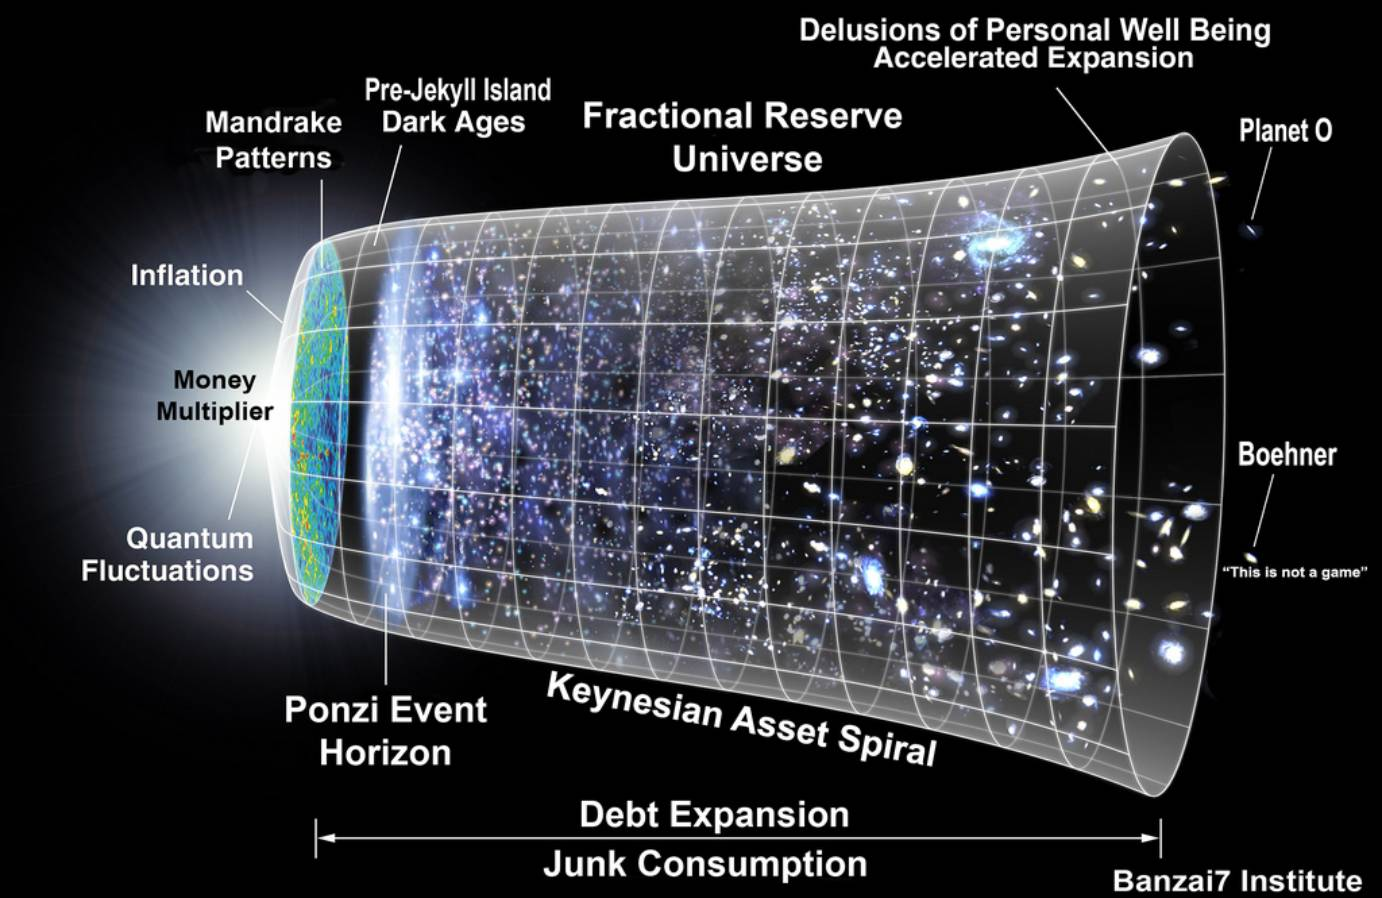 FRACTIONAL RESERVE UNIVERSE (Updated)